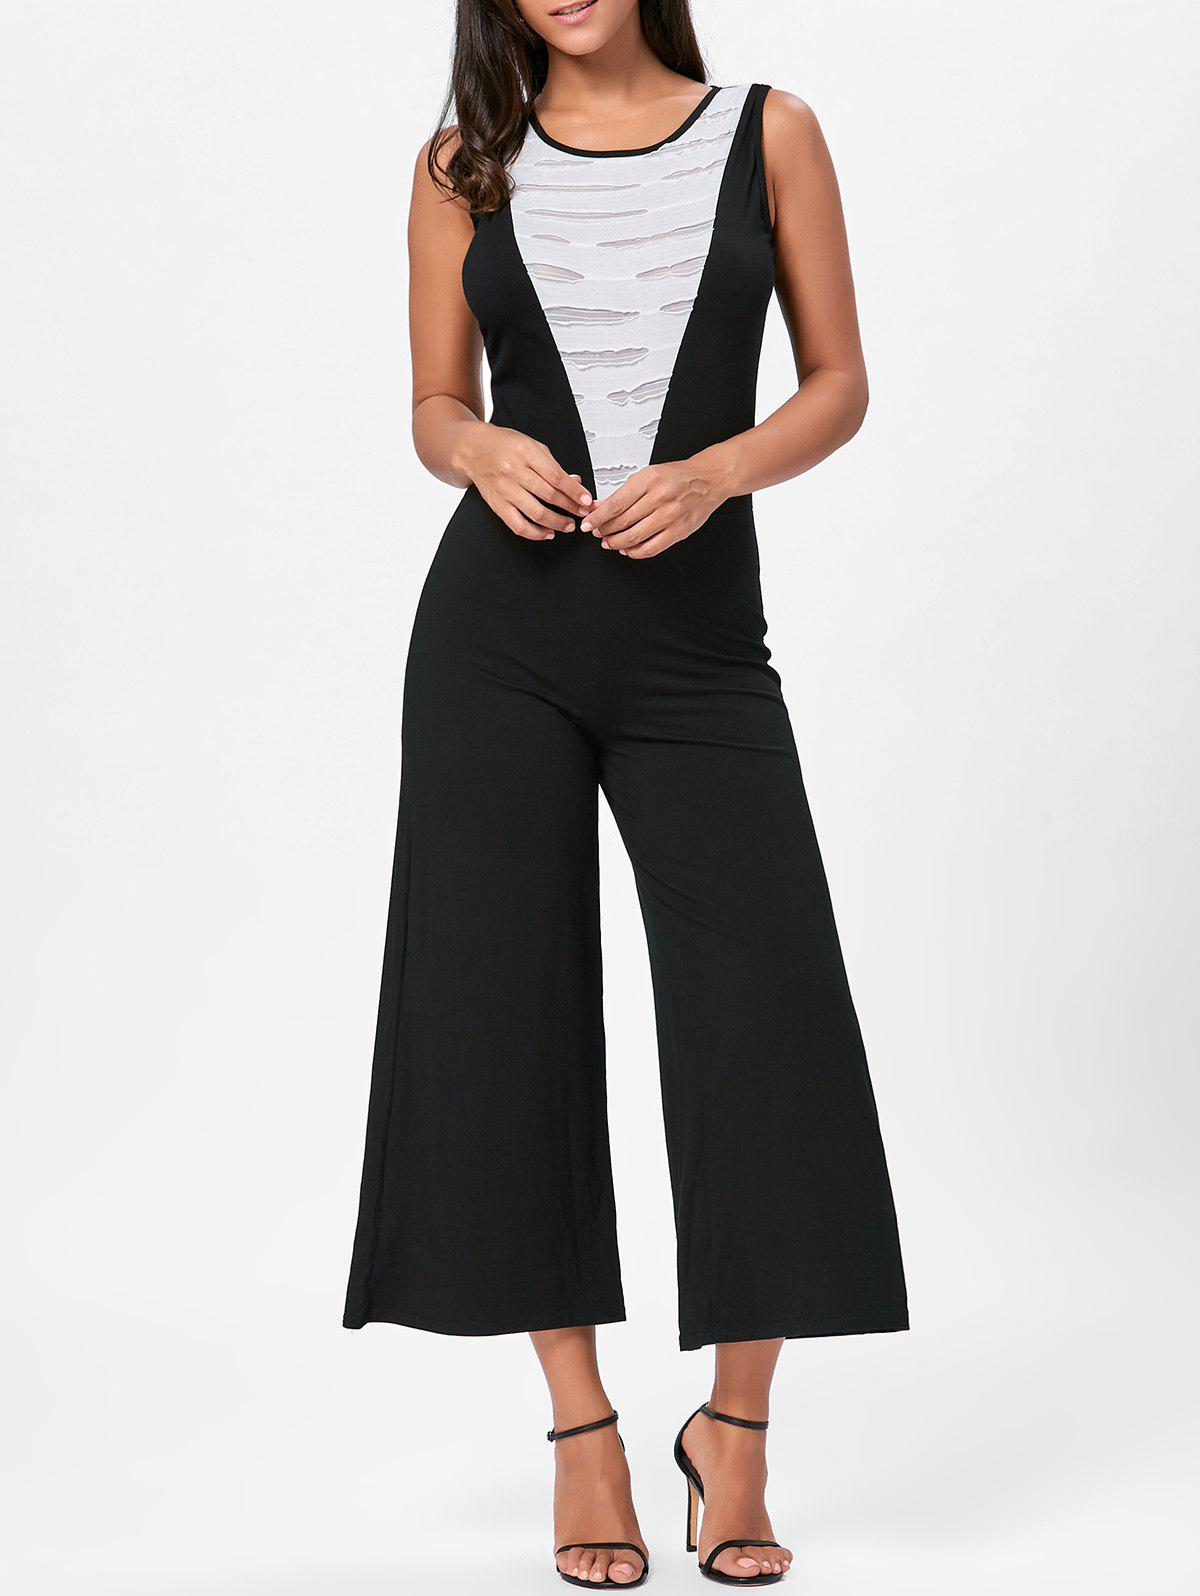 Sleeveless Two Tone Wide Leg Jumpsuit - WHITE/BLACK M